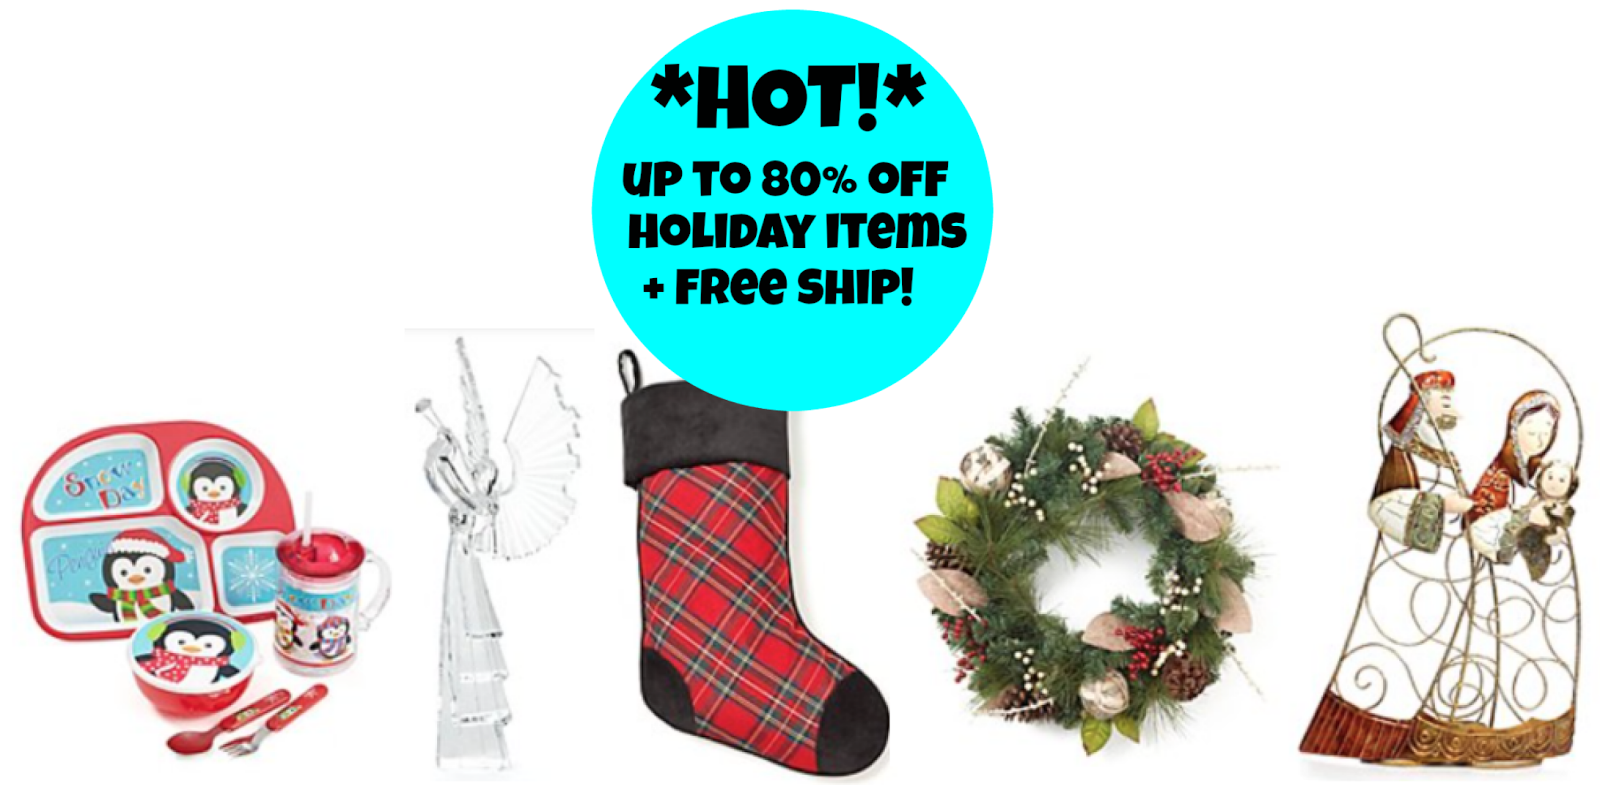 http://www.thebinderladies.com/2015/01/hot-bonton-up-to-80-off-holiday-items.html#.VK2V2ofduyM